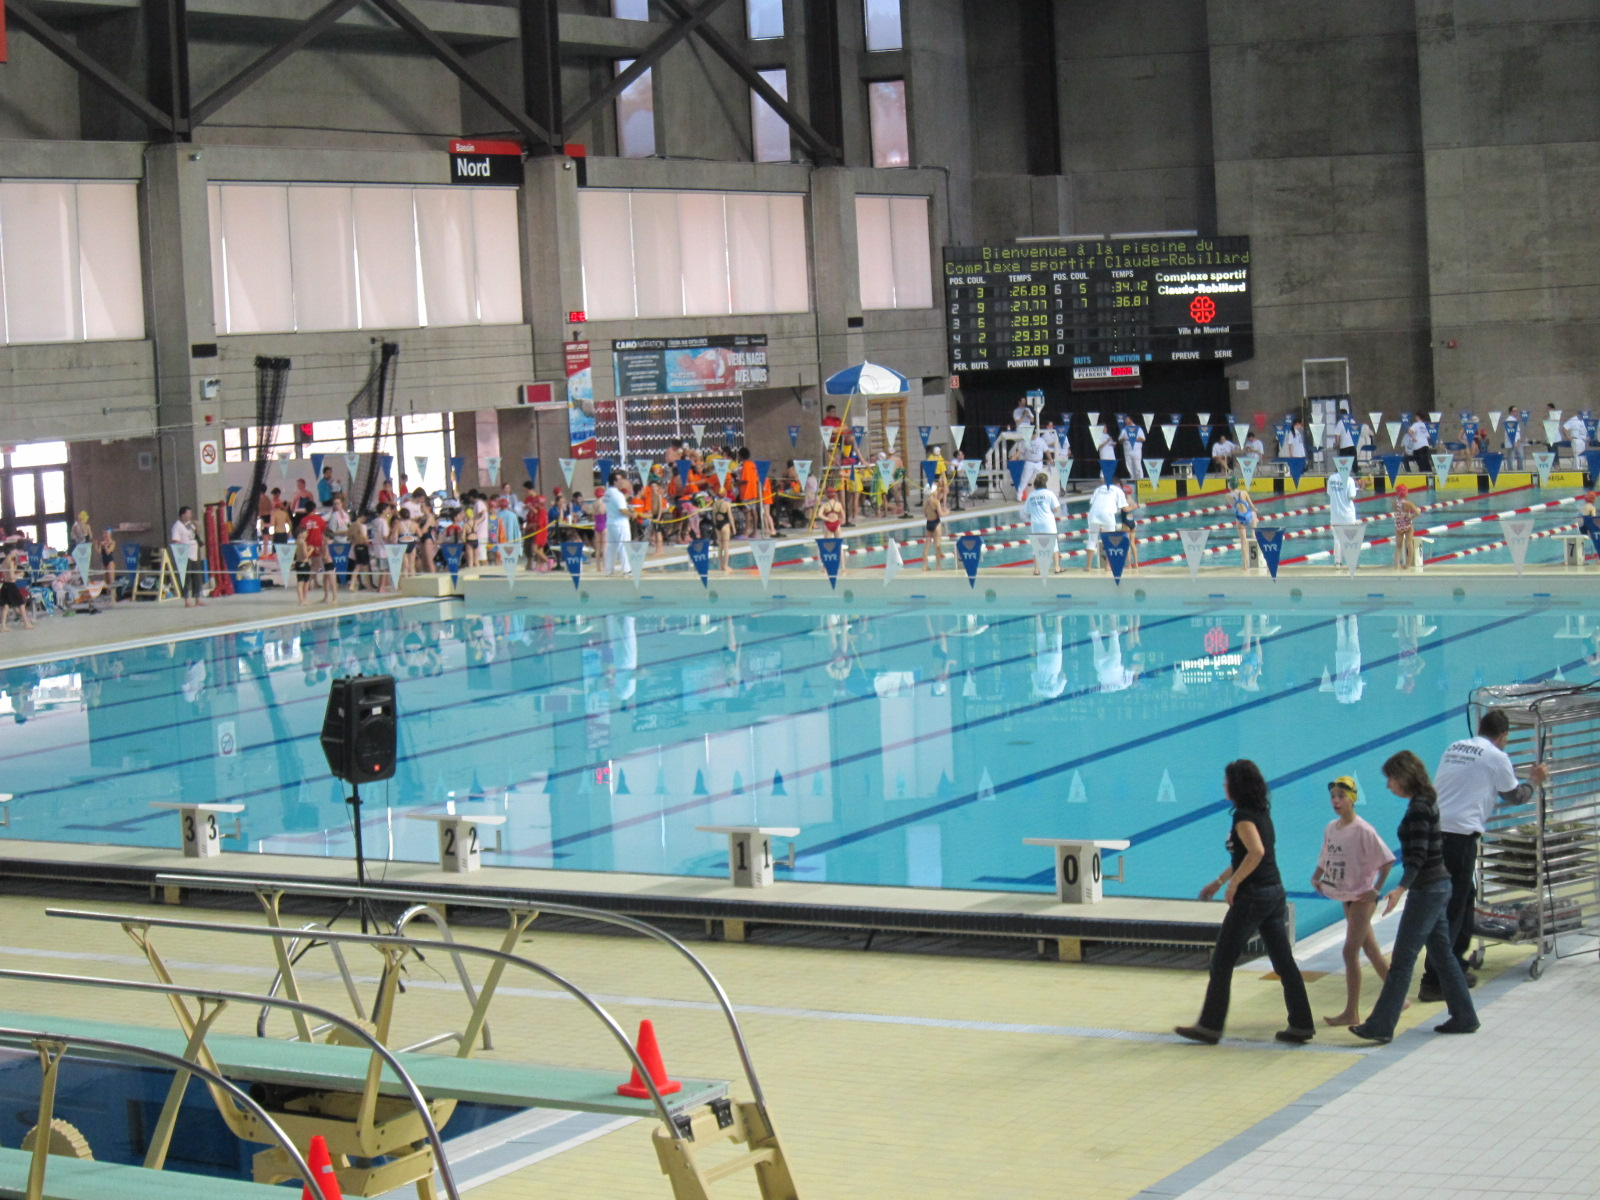 Natation vasion cr7 for Centre claude robillard piscine